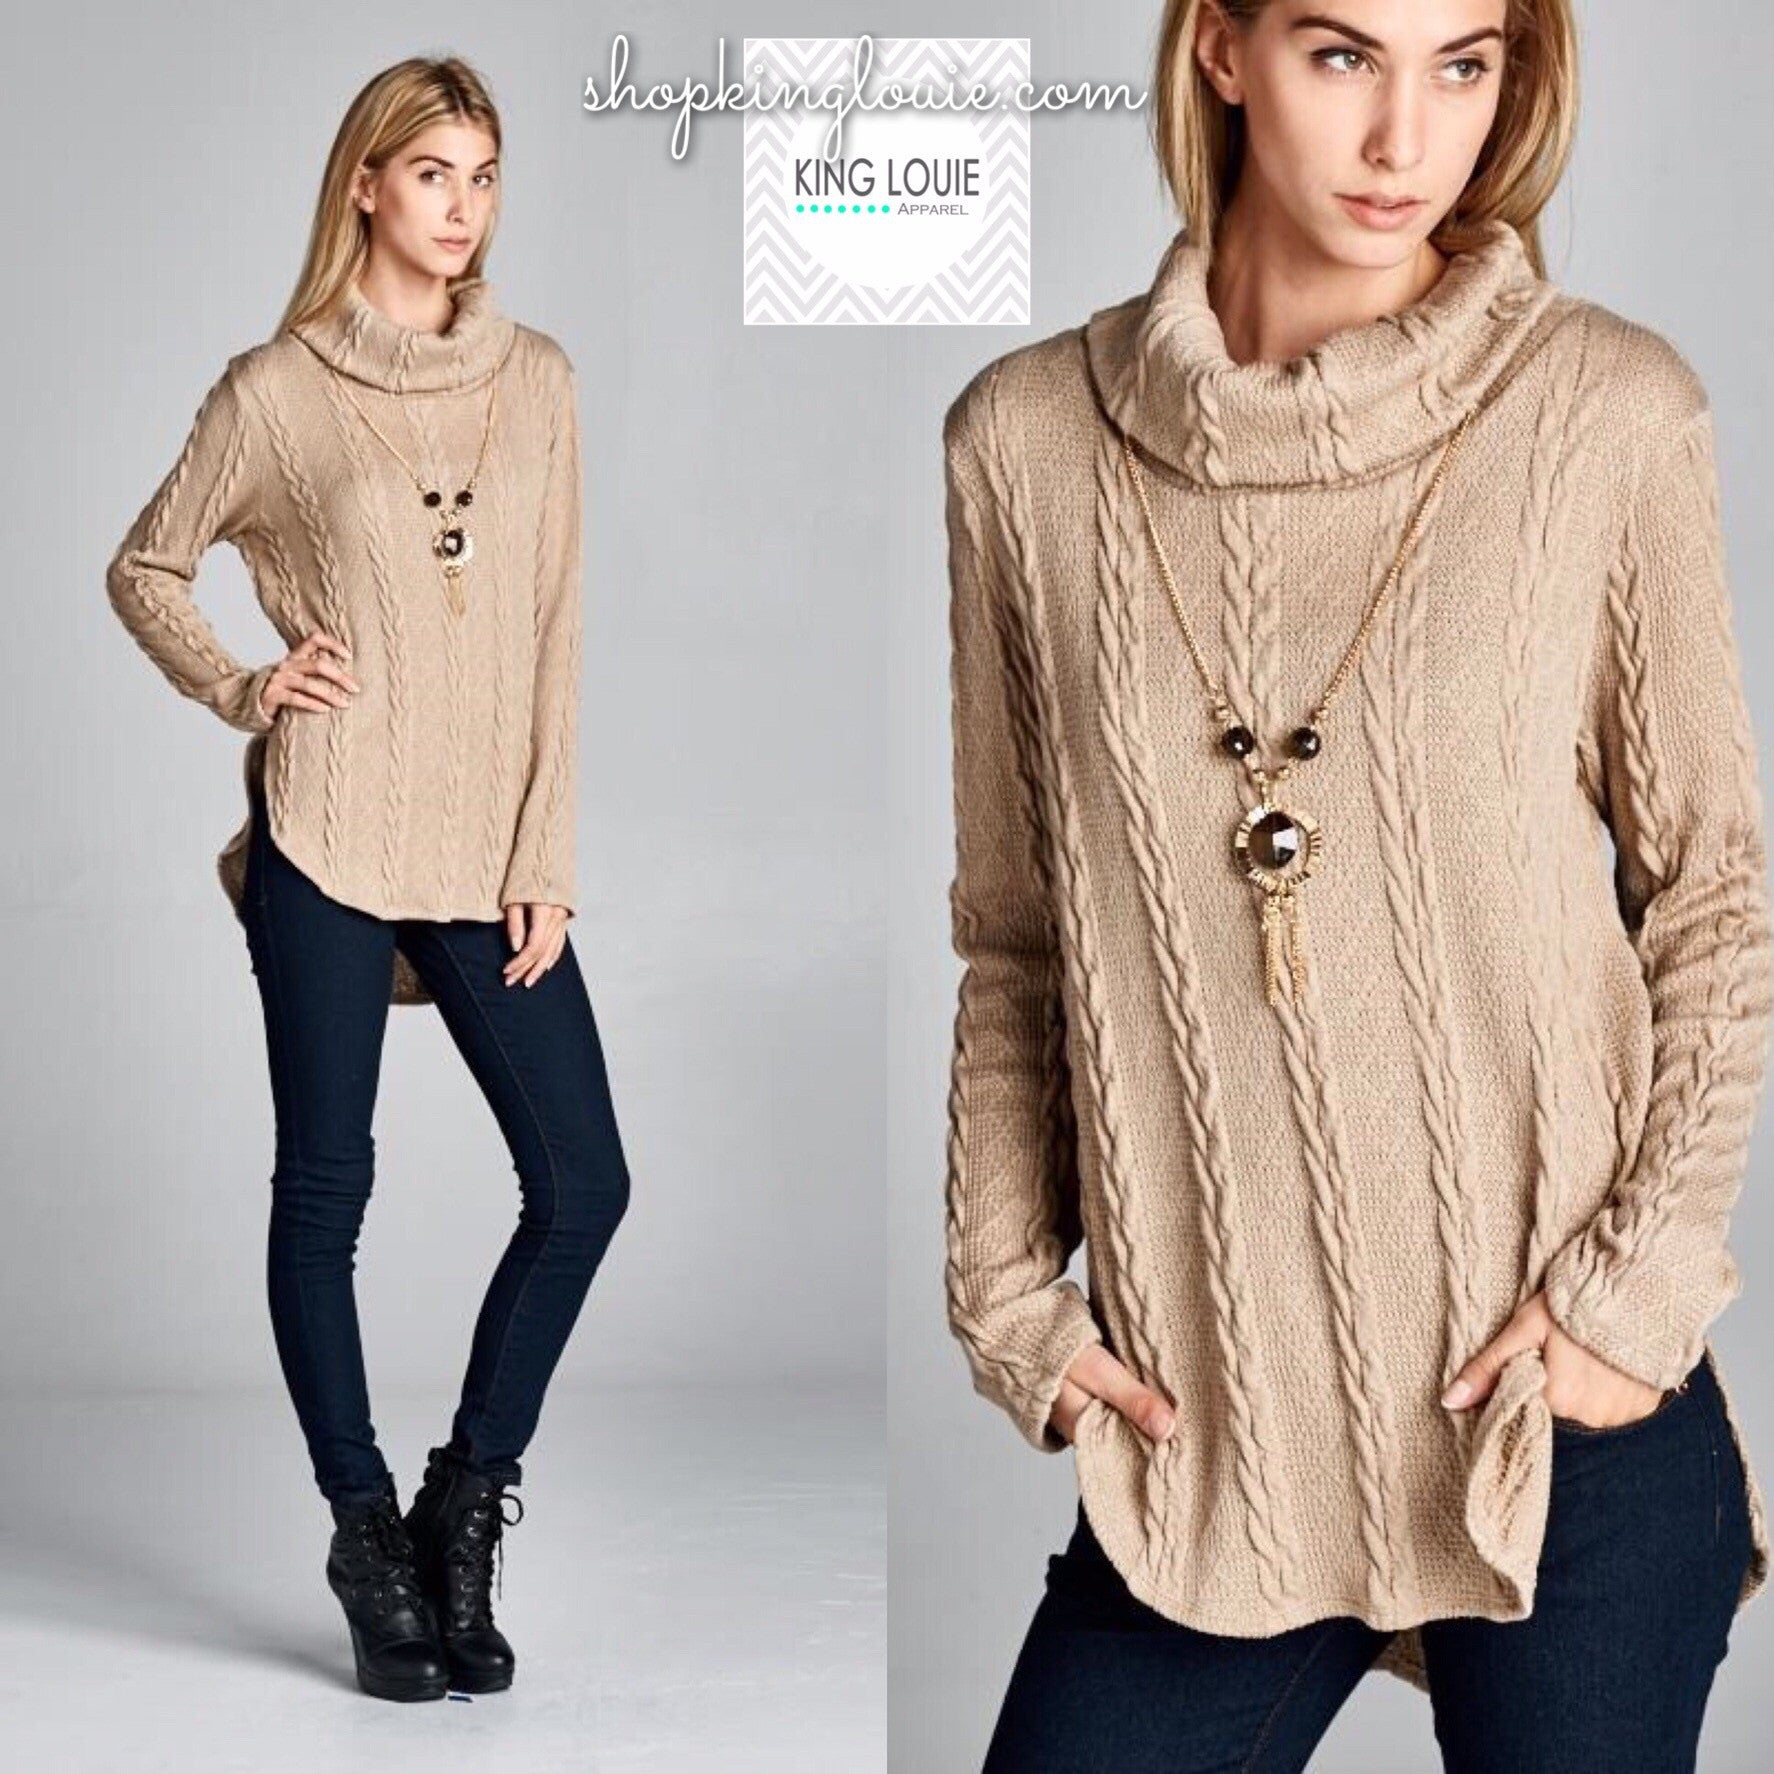 Braided Knit Tunic Sweater